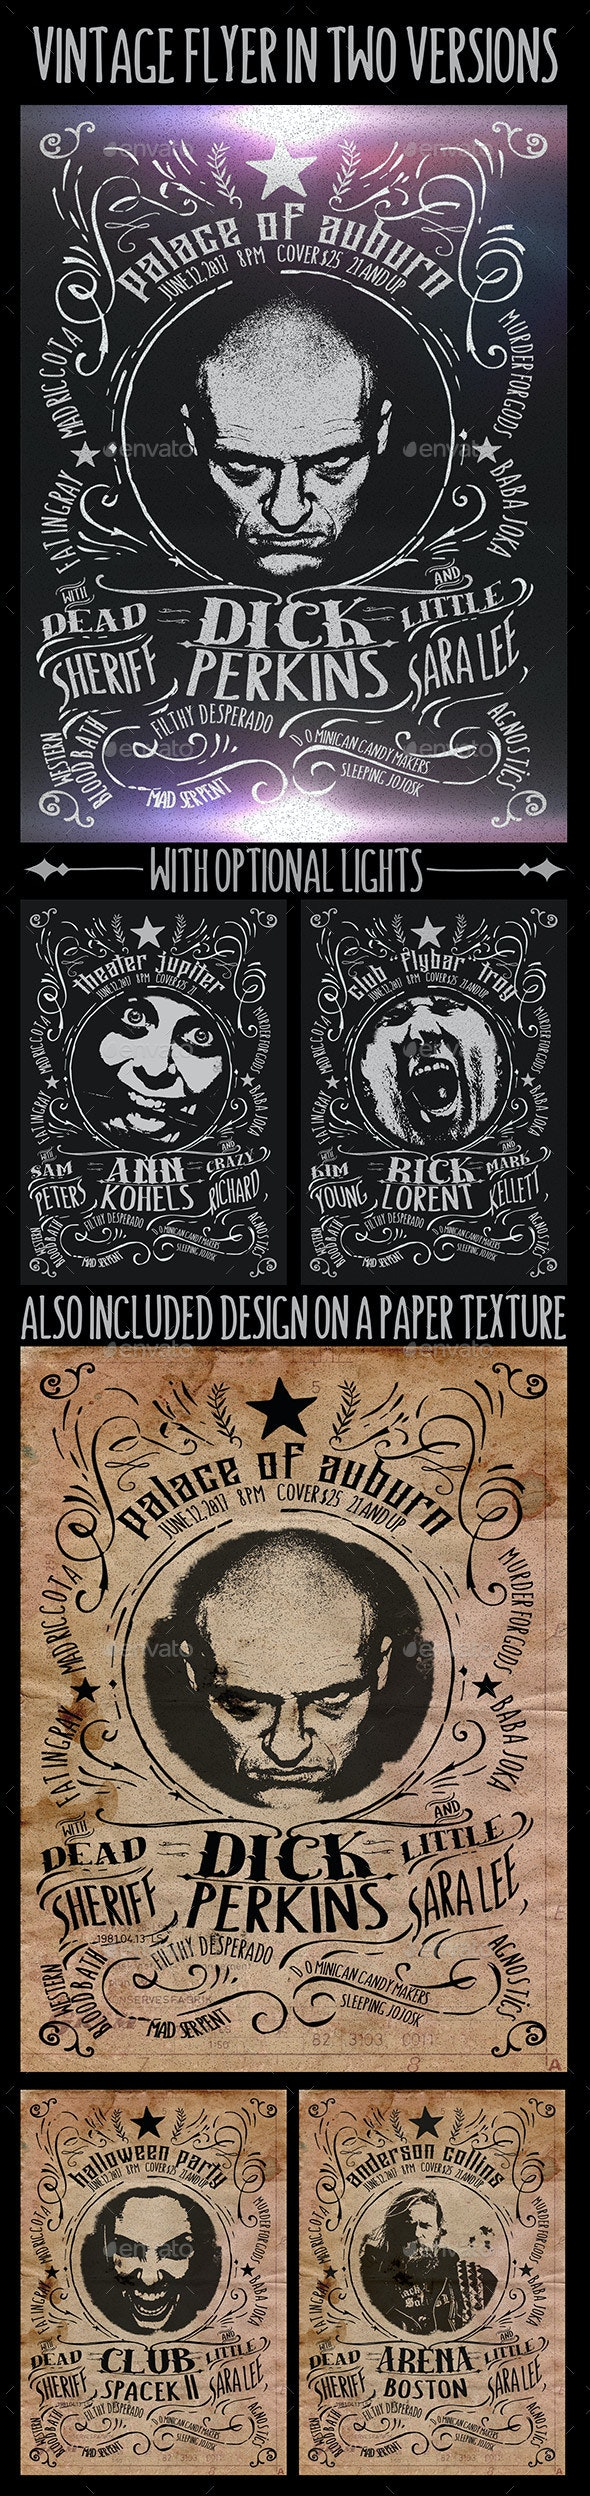 Unique Vintage Flyer in Two Versions  - Retro/Vintage Business Cards